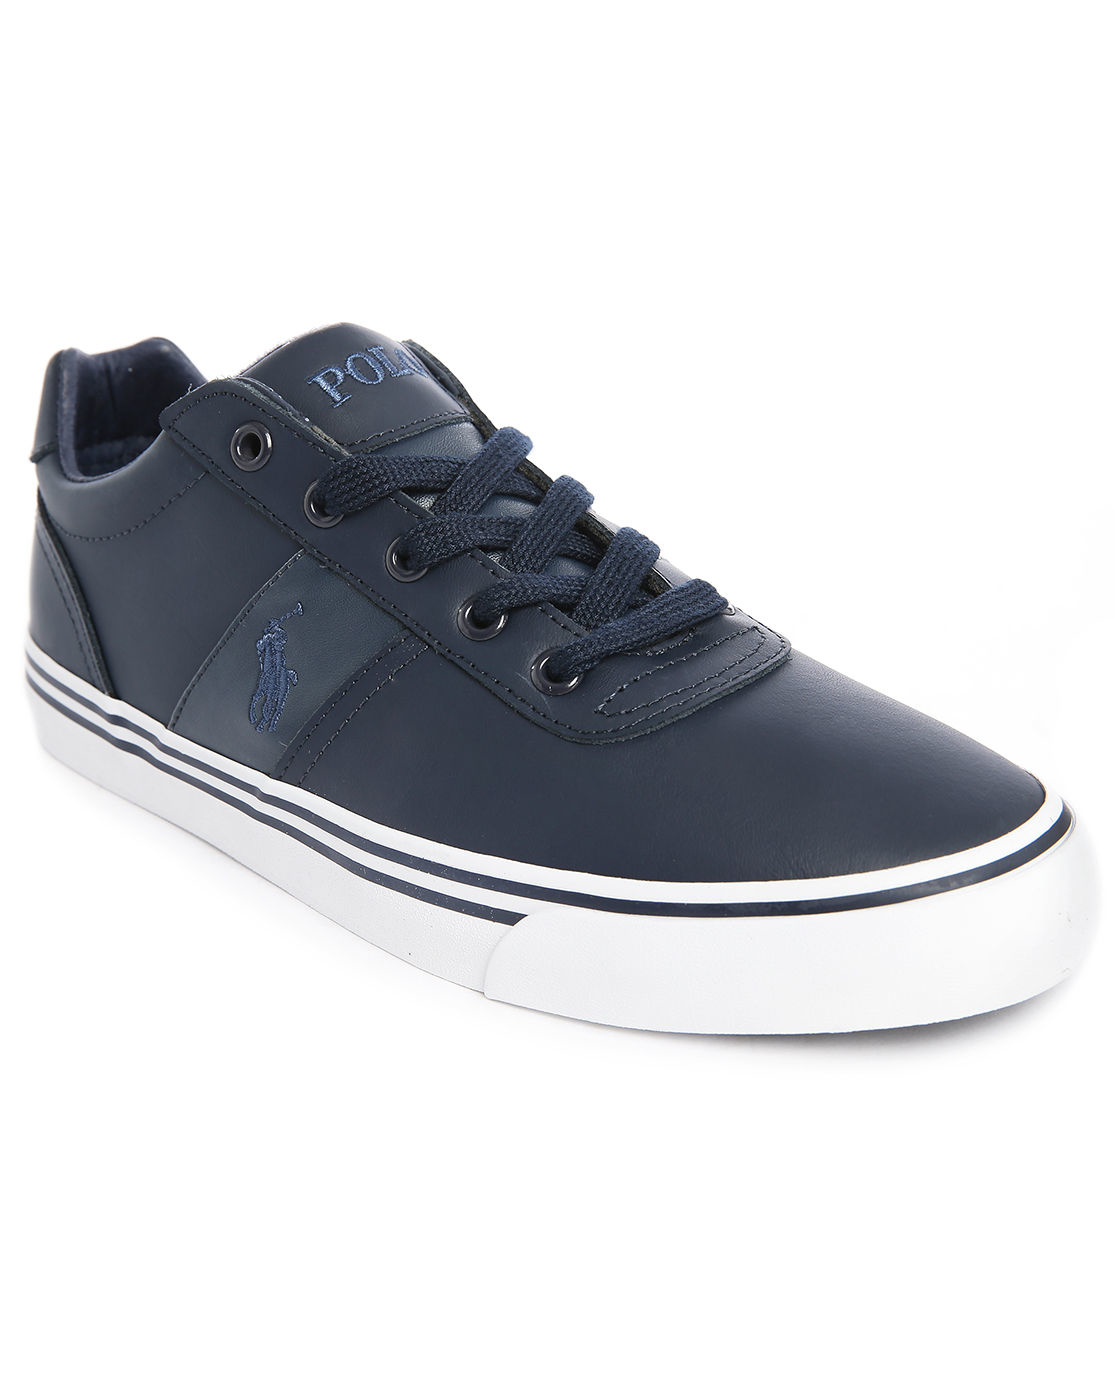 polo ralph lauren hanford navy leather sneakers in blue for men lyst. Black Bedroom Furniture Sets. Home Design Ideas